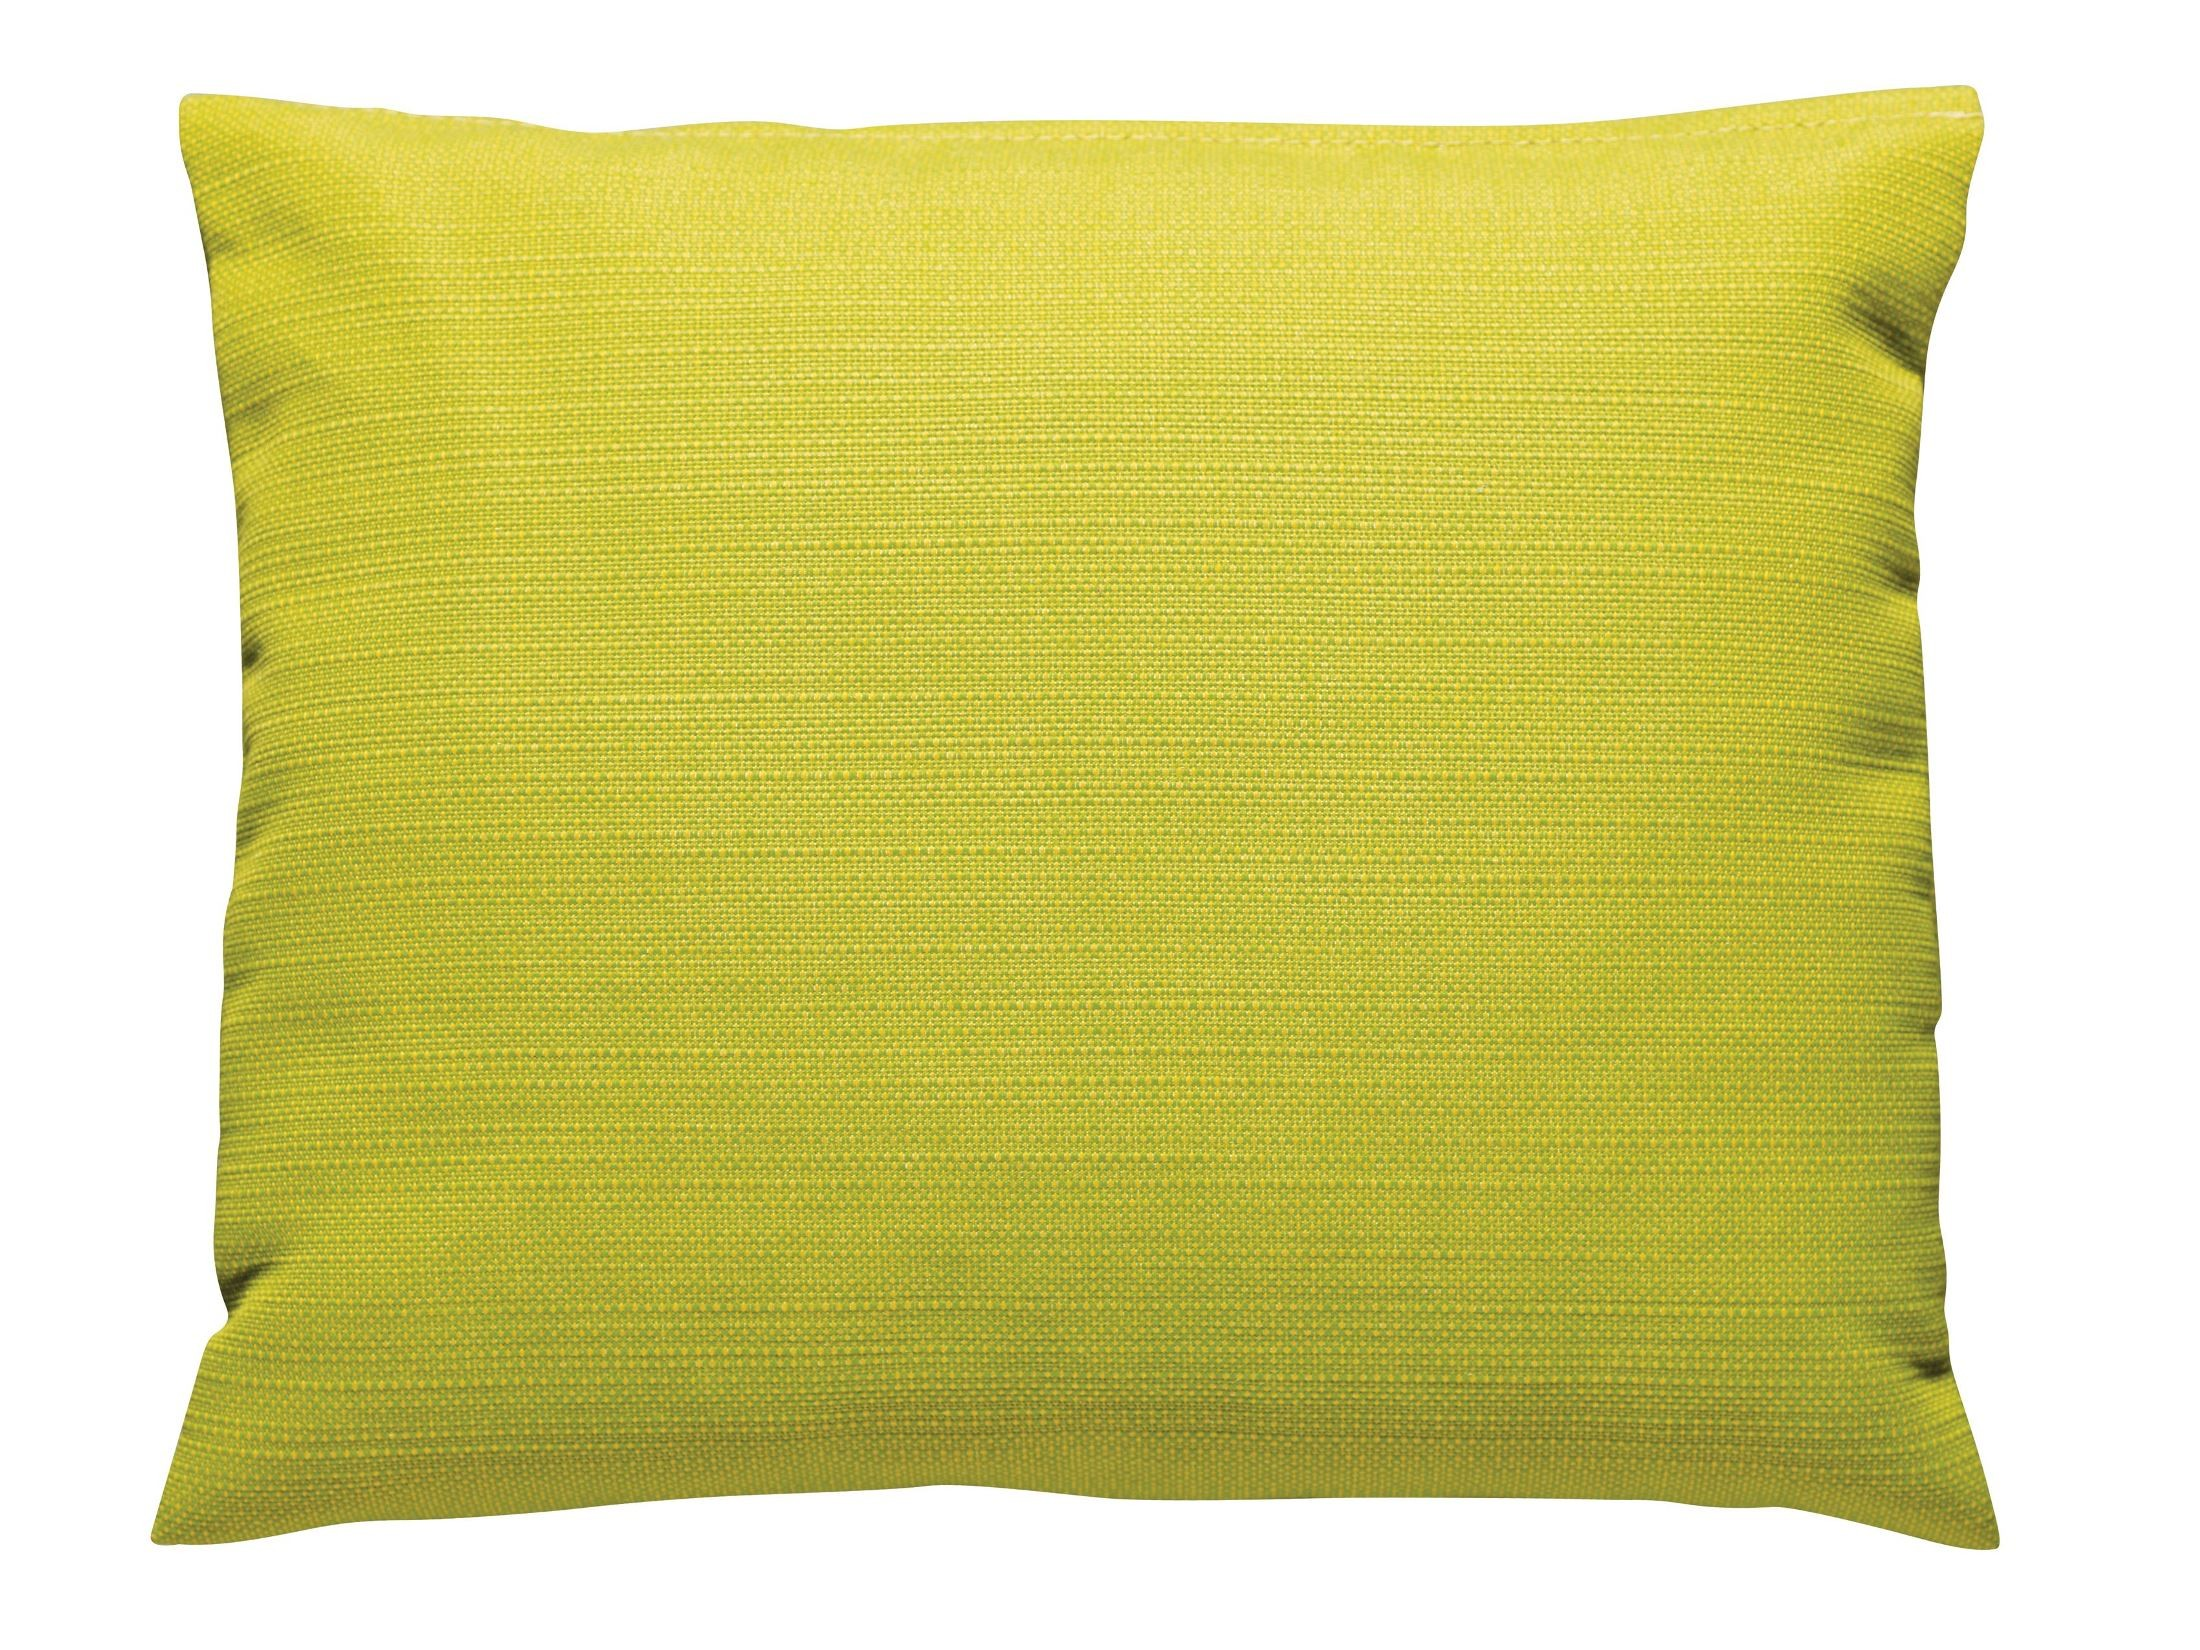 chair headrest pillow swivel keeps dropping generations echo lime cushion from cr